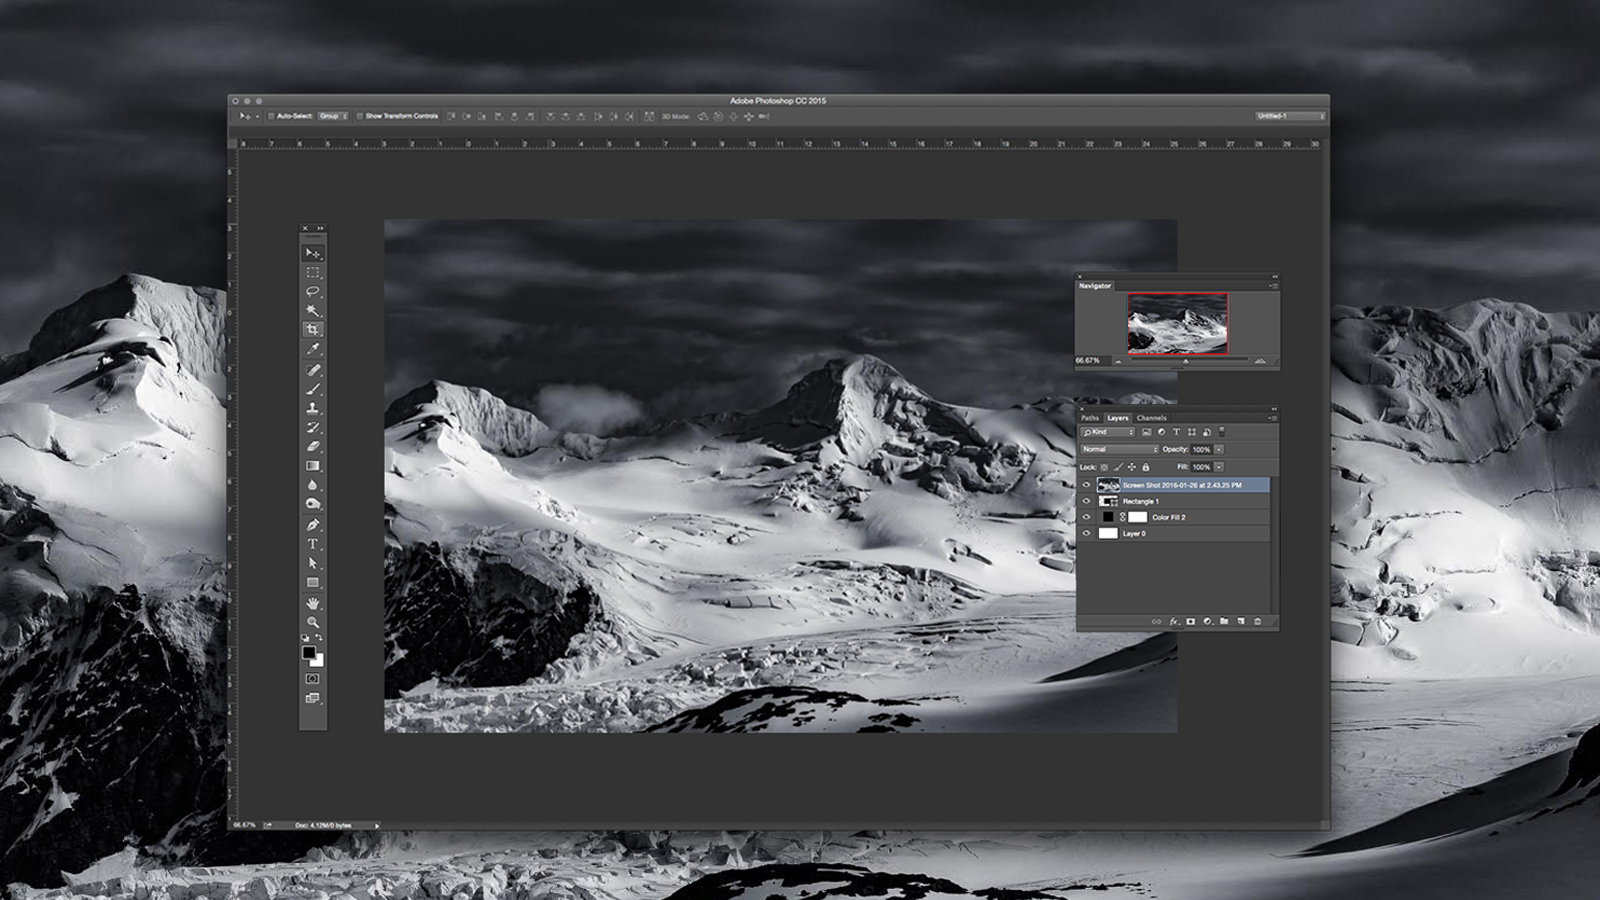 Adobe Photoshop CC: The Complete Guide with Ben Willmore